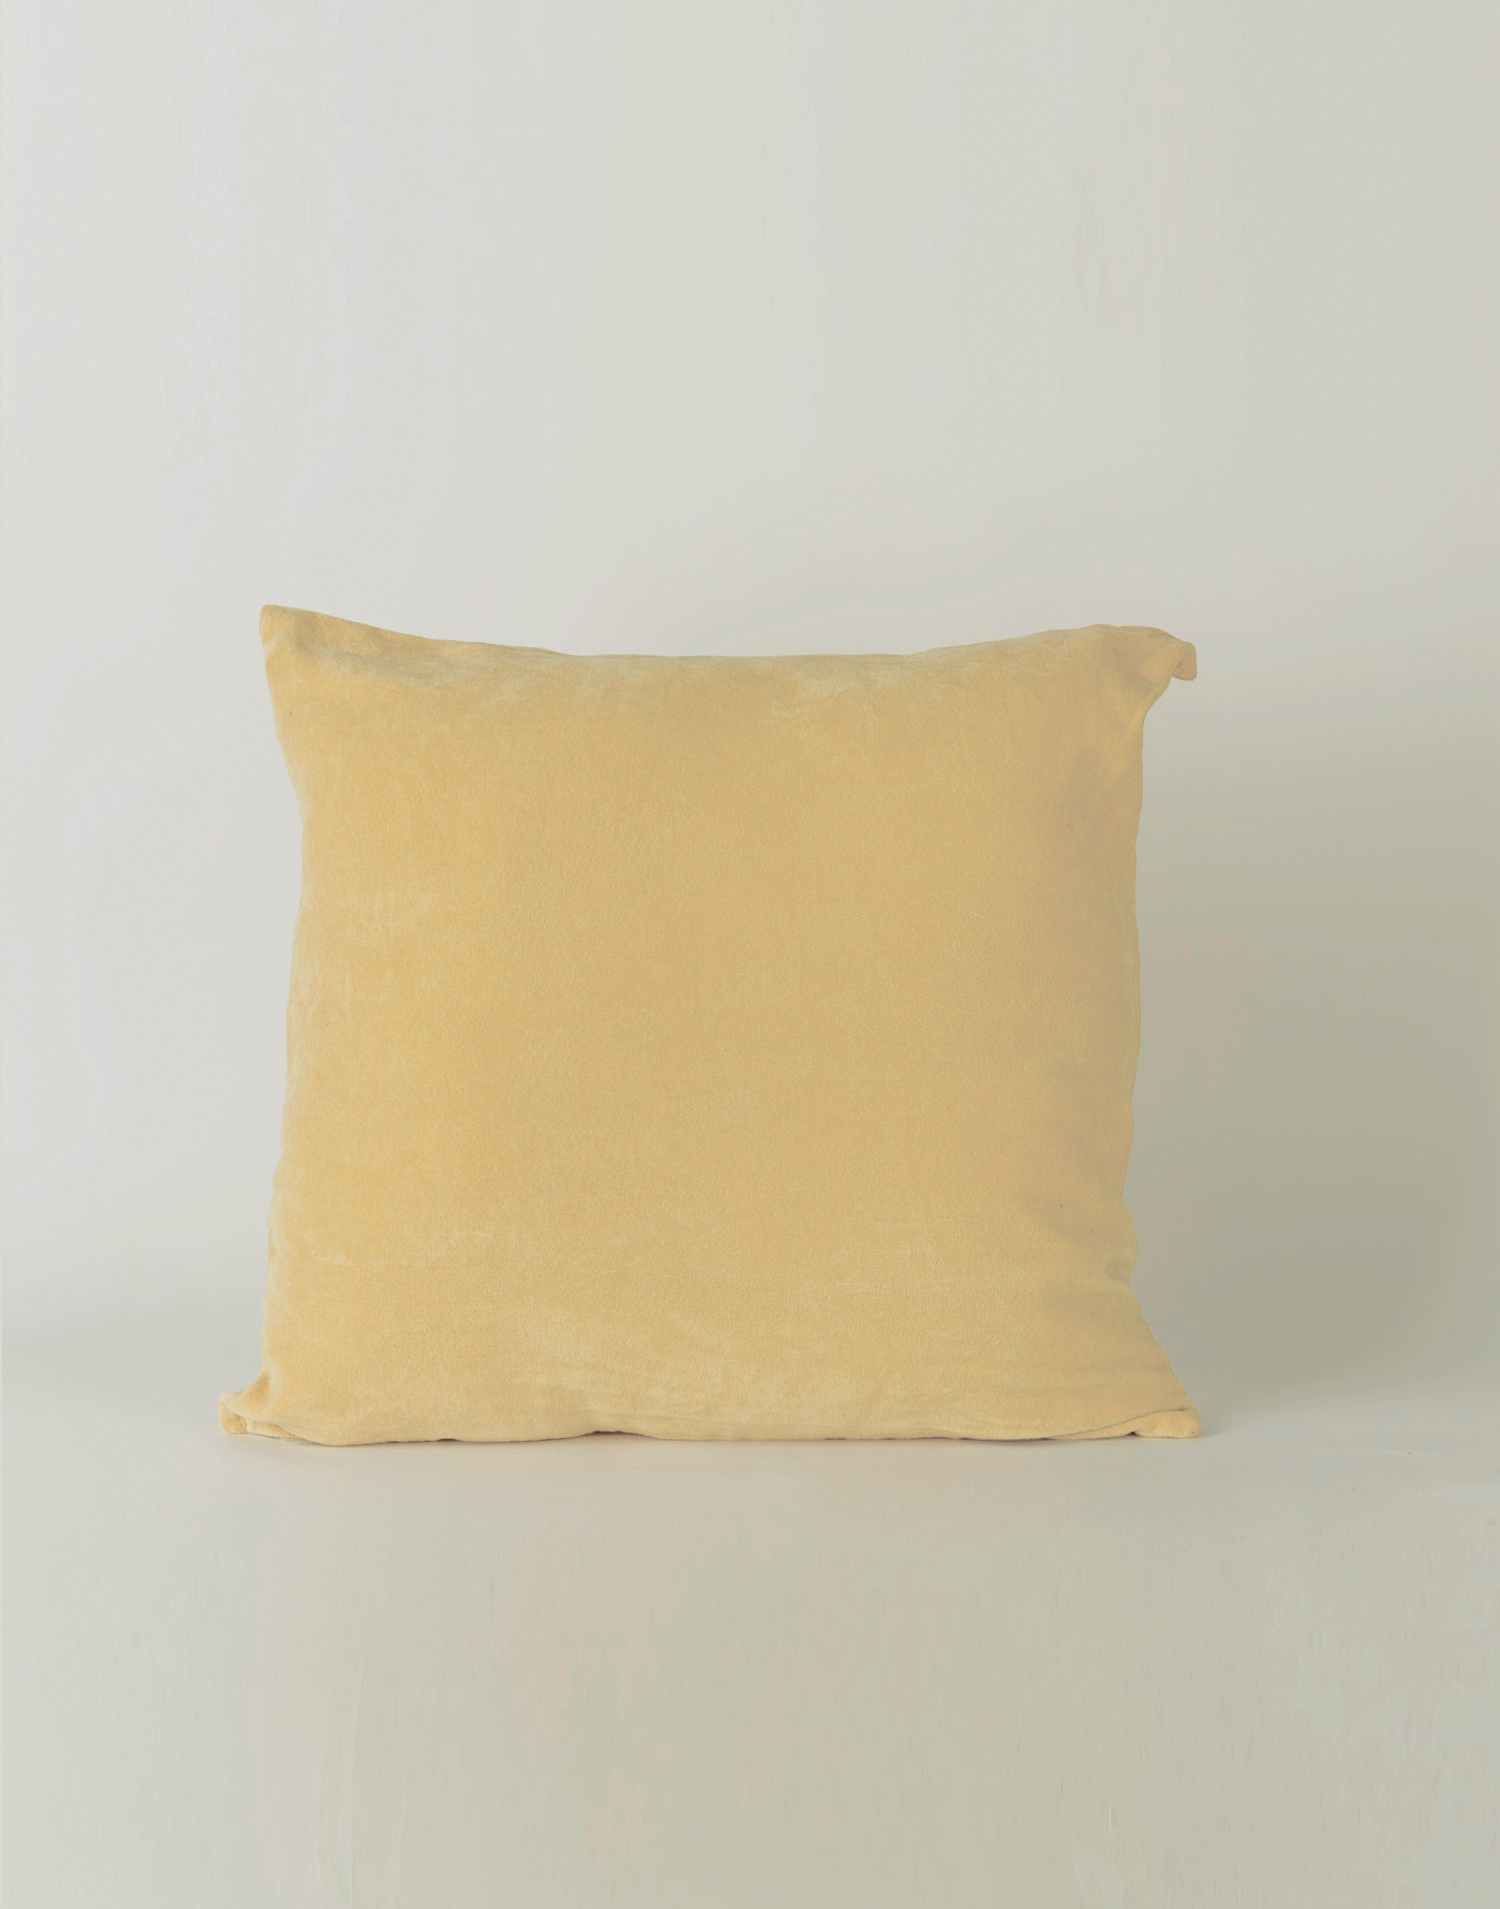 Velvet cushion cover 45 x 45